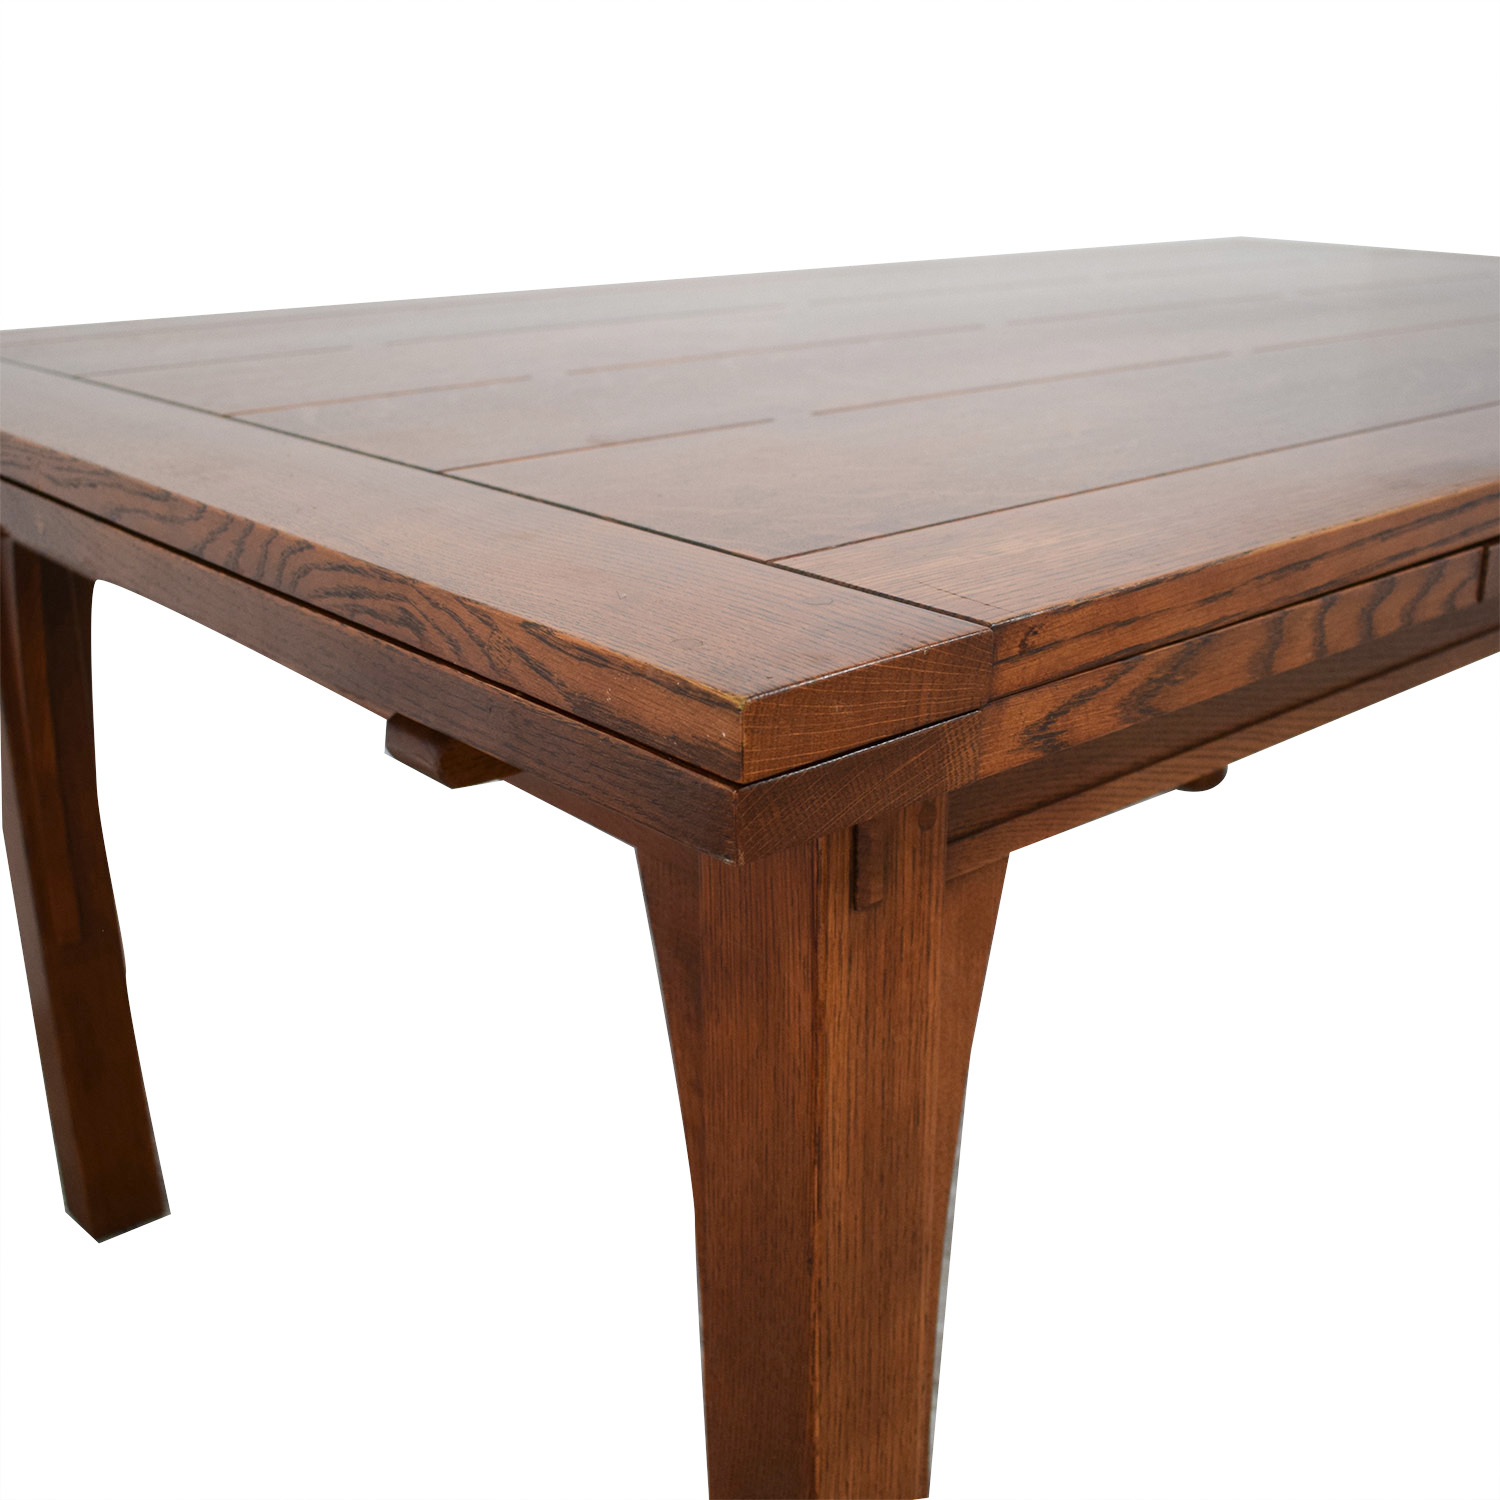 buy Stickley Furniture Stickley Mission Dining Table online